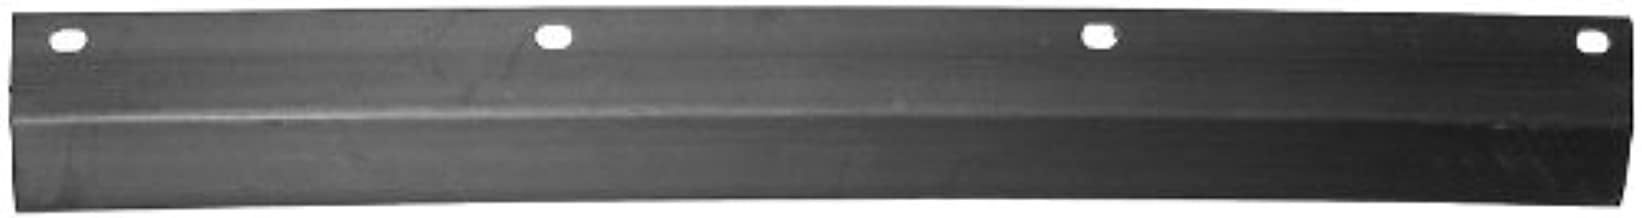 Oregon 73-044 Snow Thrower Scraper Bar For Snapper Part Numbers 2-4619 And 28425